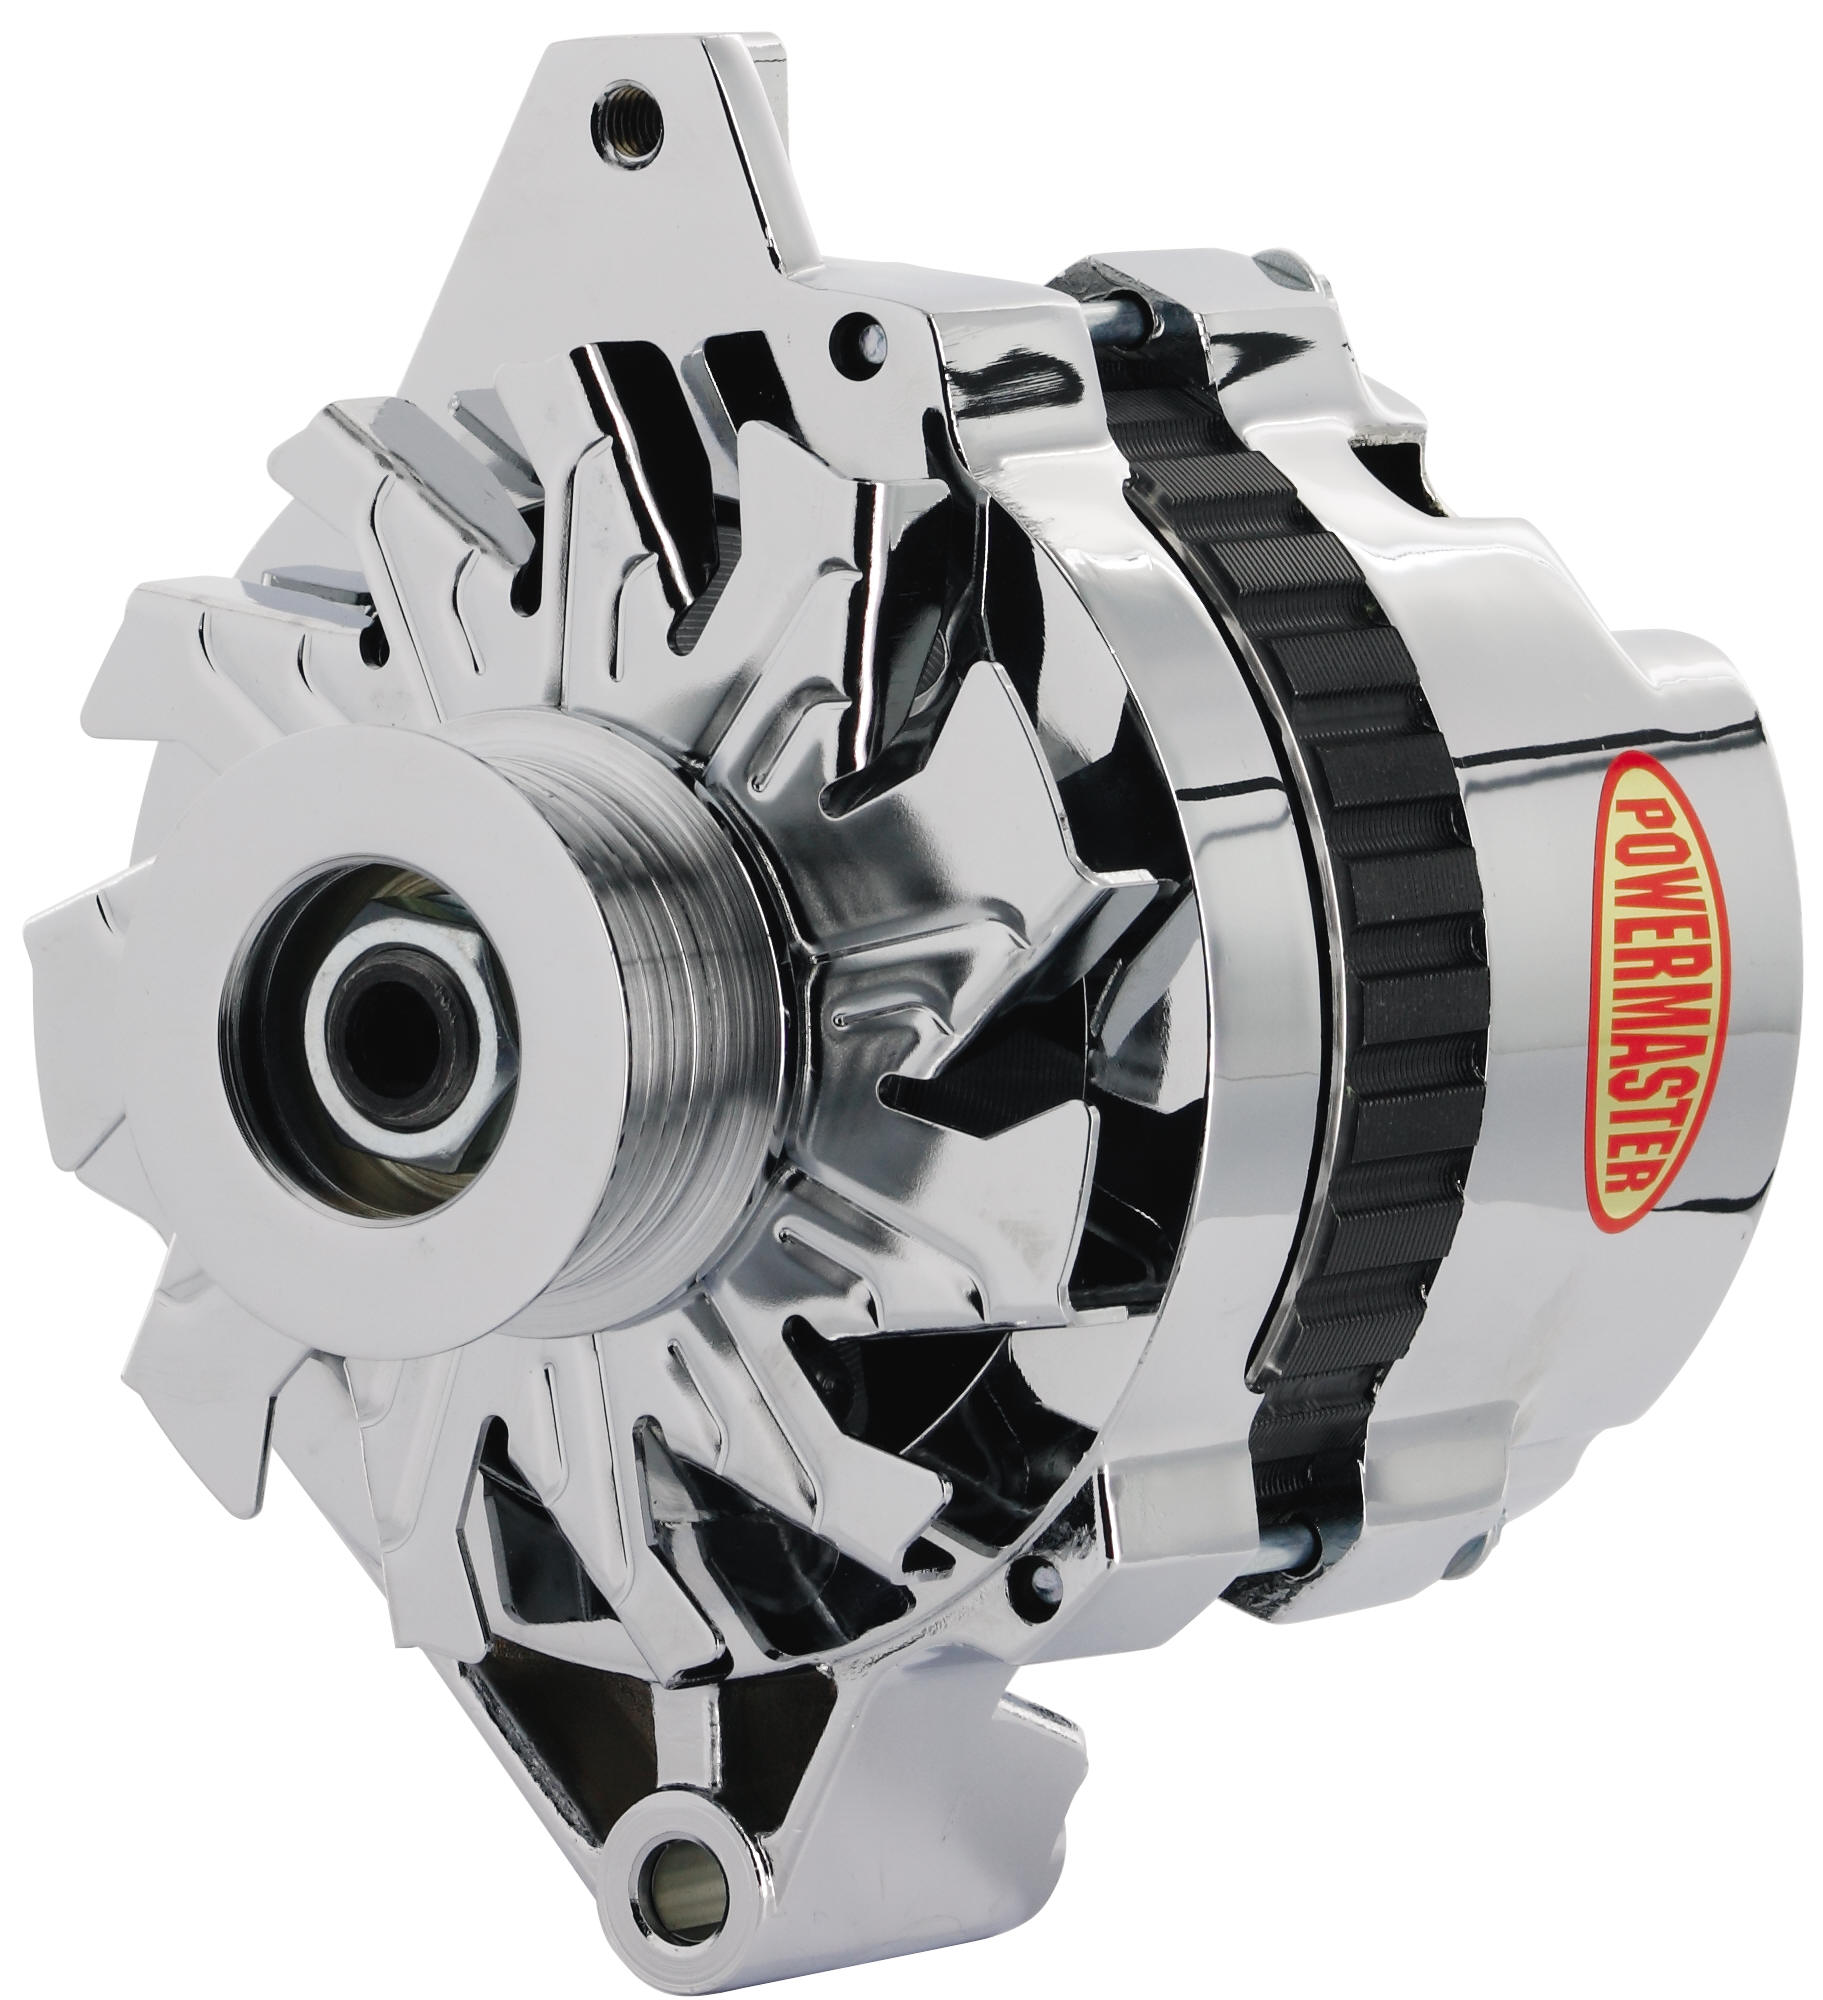 hight resolution of powermaster 17802 alternator generator gm cs130 style 6 groove serpentine pulley 105 amp straight mount one wire oe chrome walmart canada